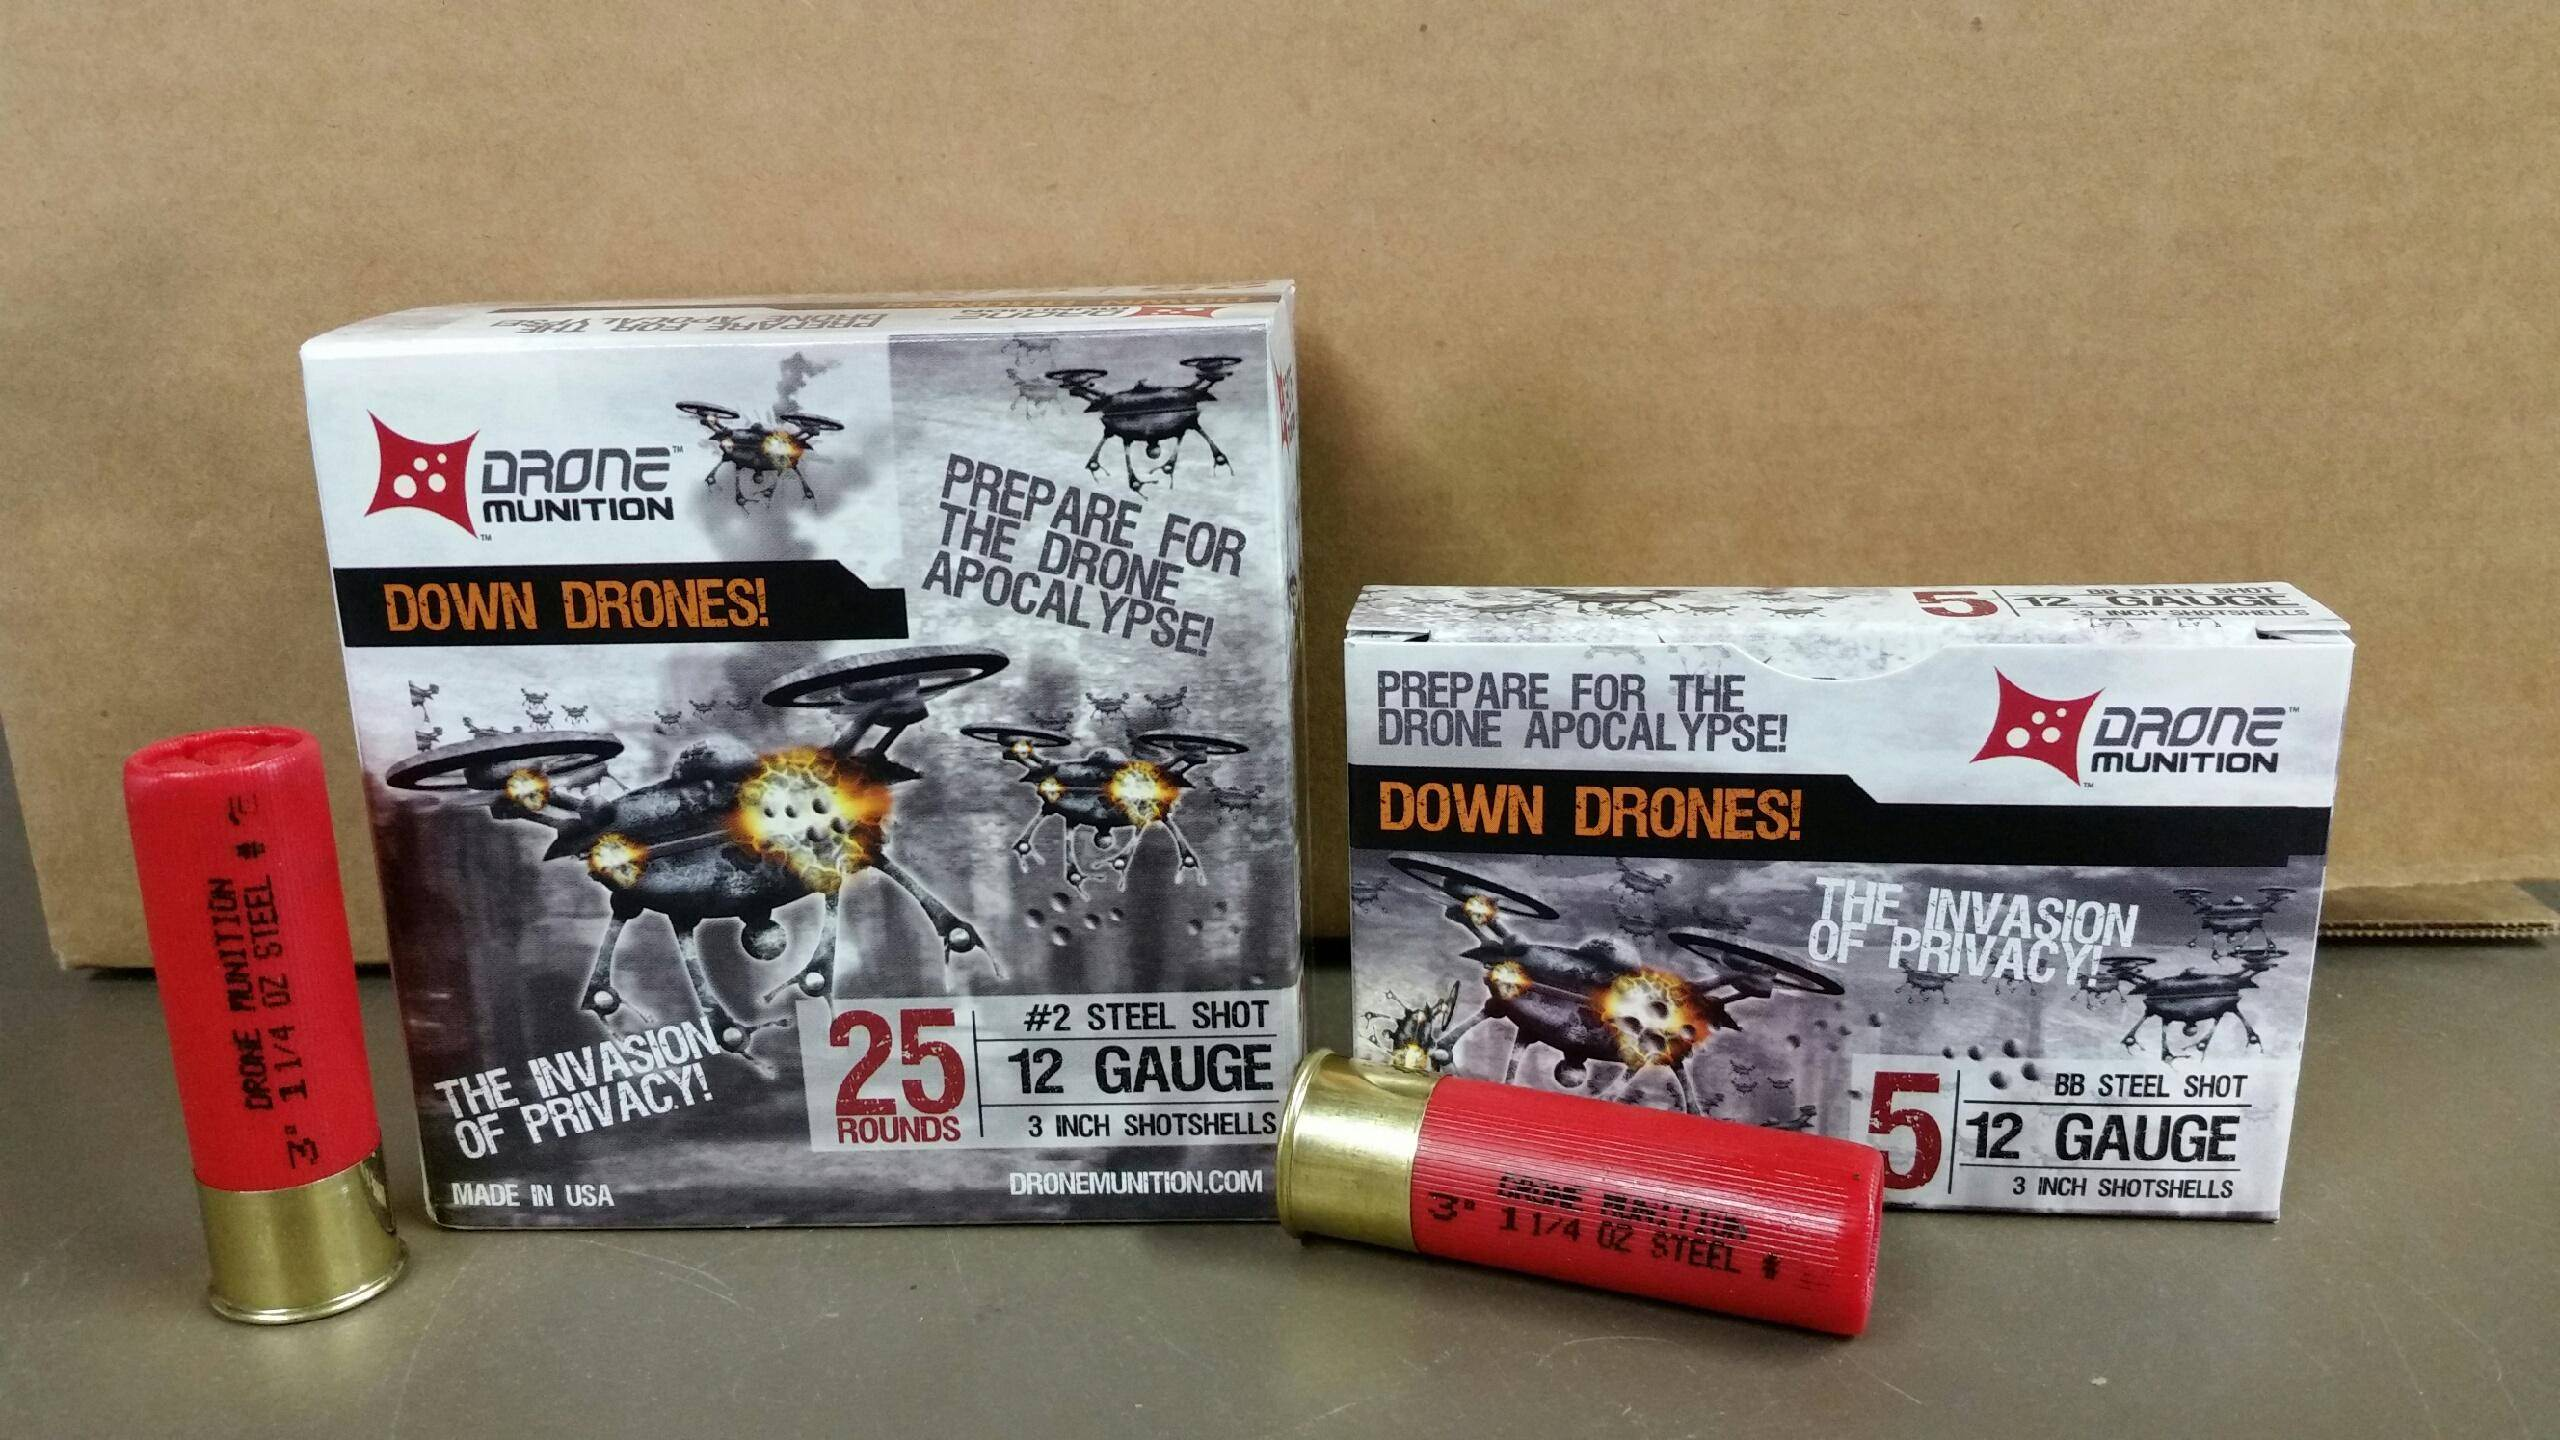 Snake River Shooting Products and Consulting Inc. Drone Munition Shot Shell